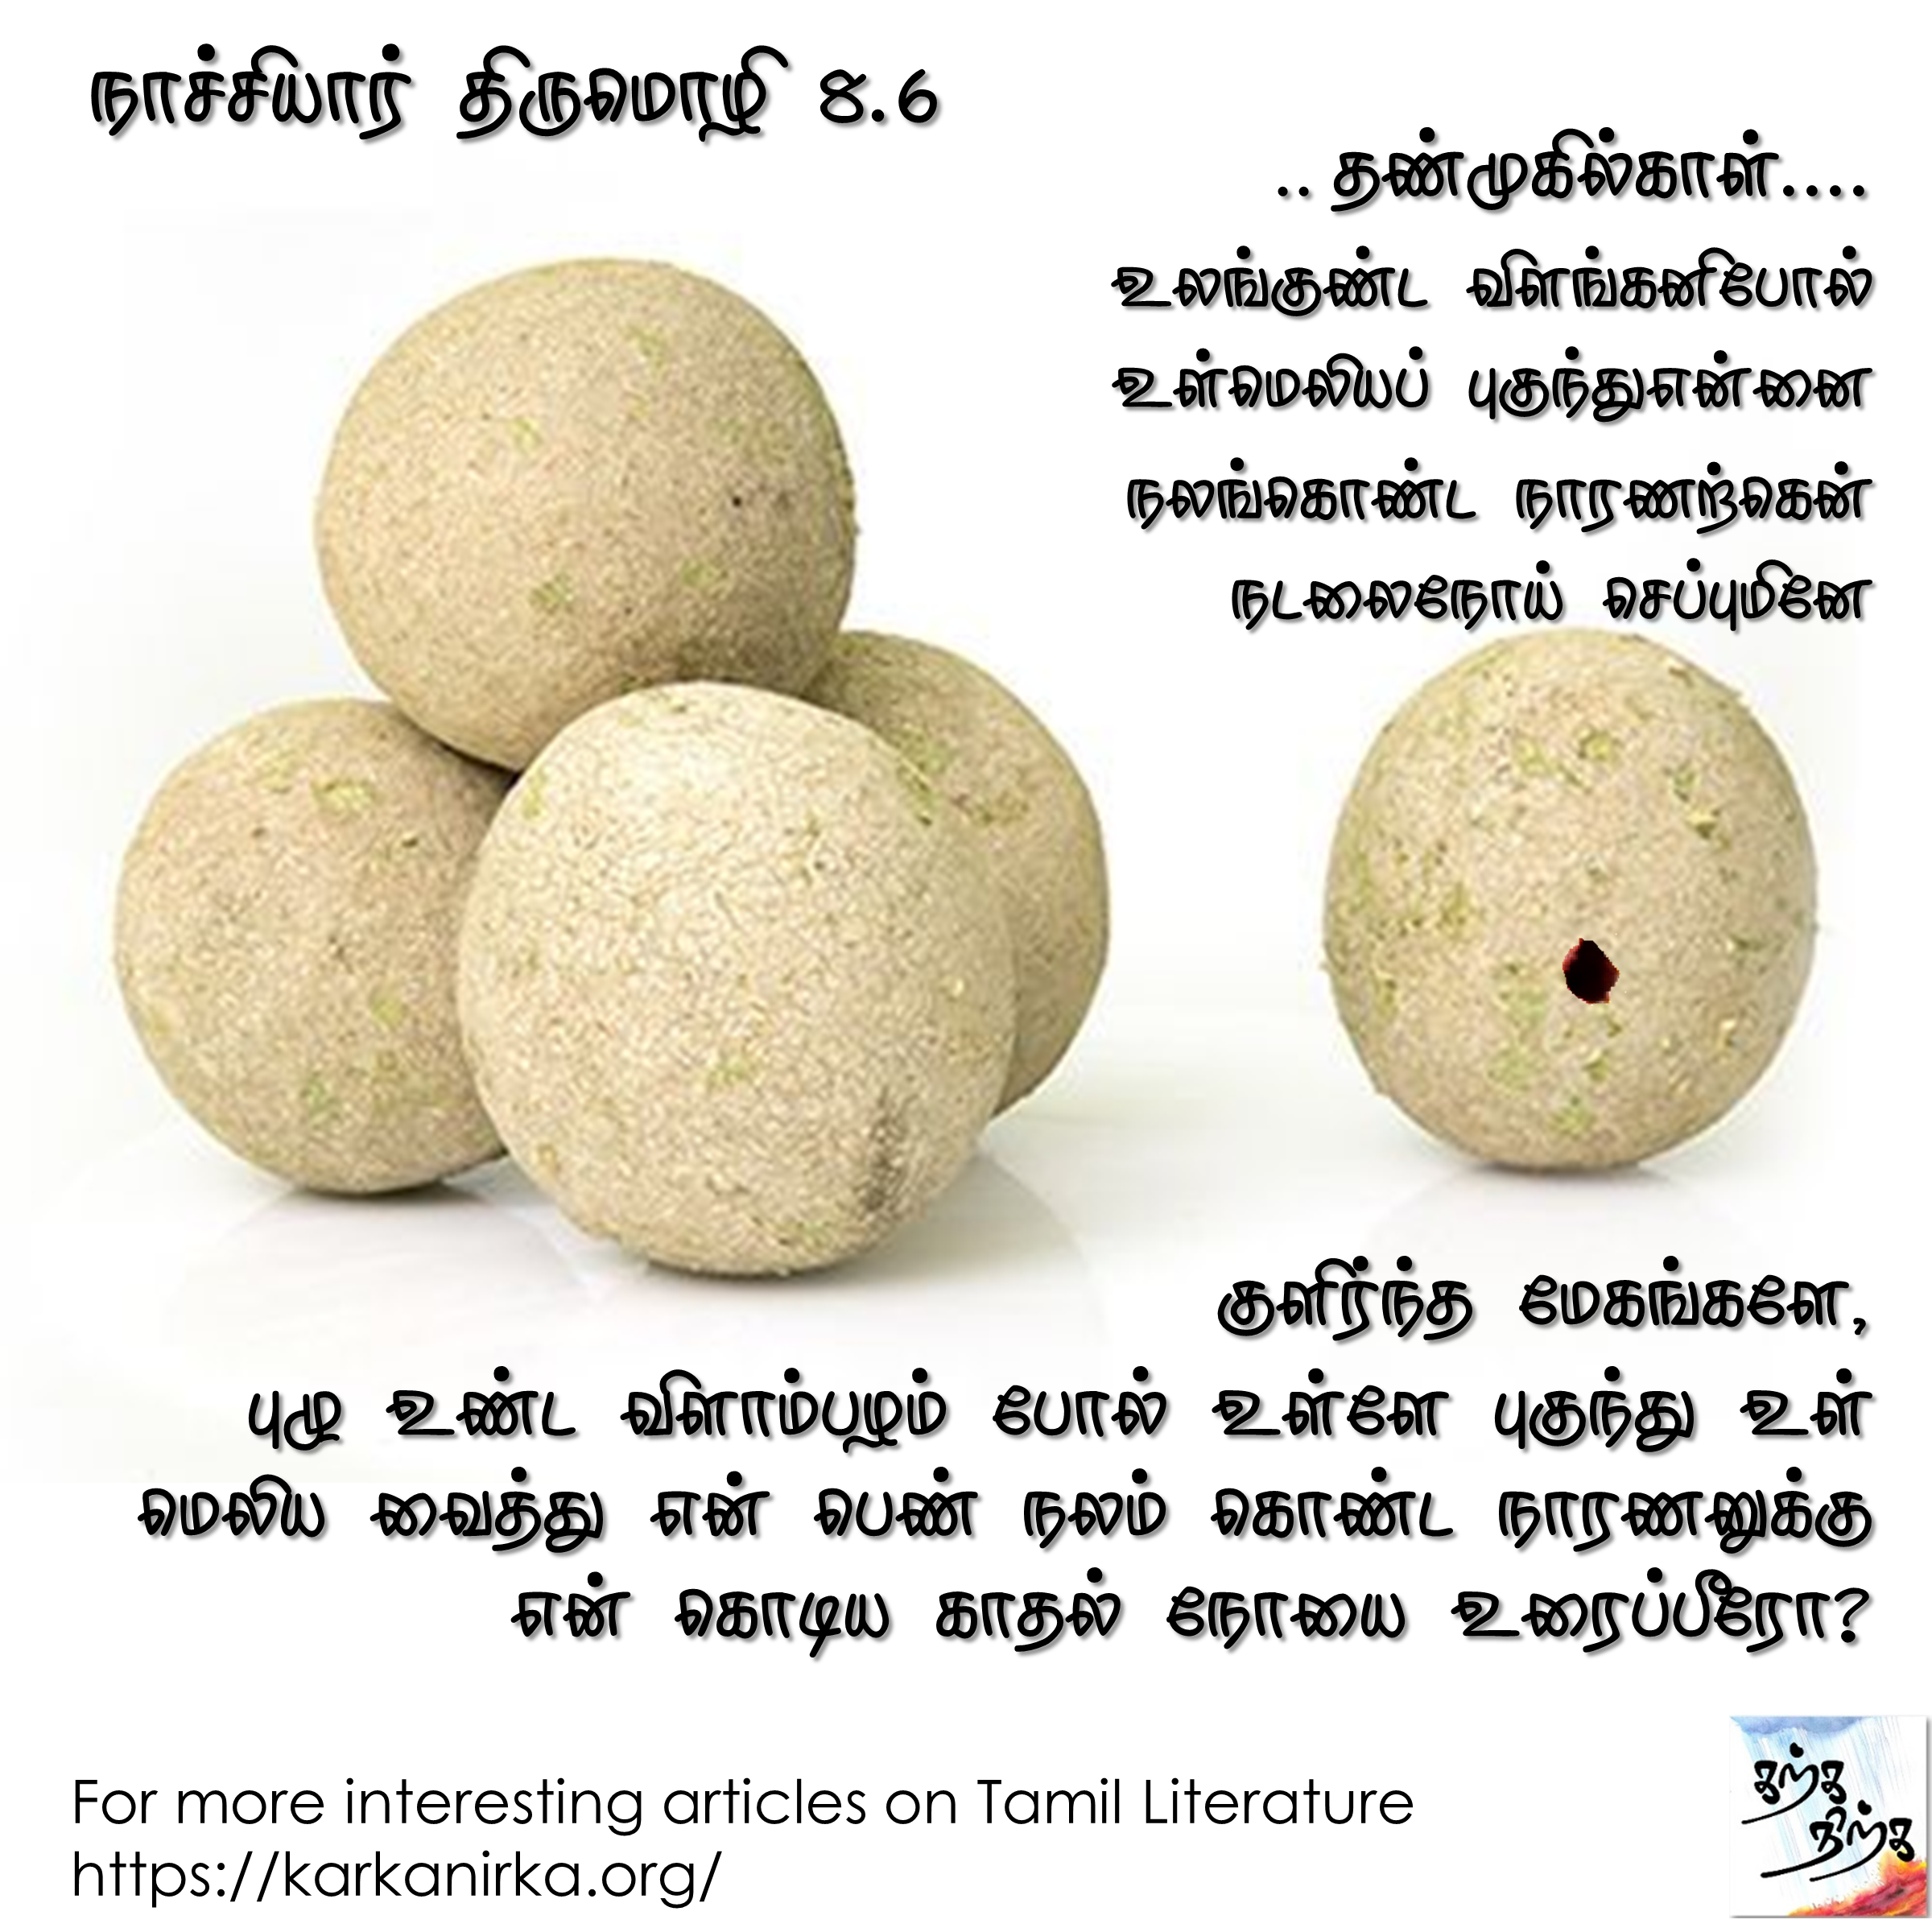 wood apple tamil.png